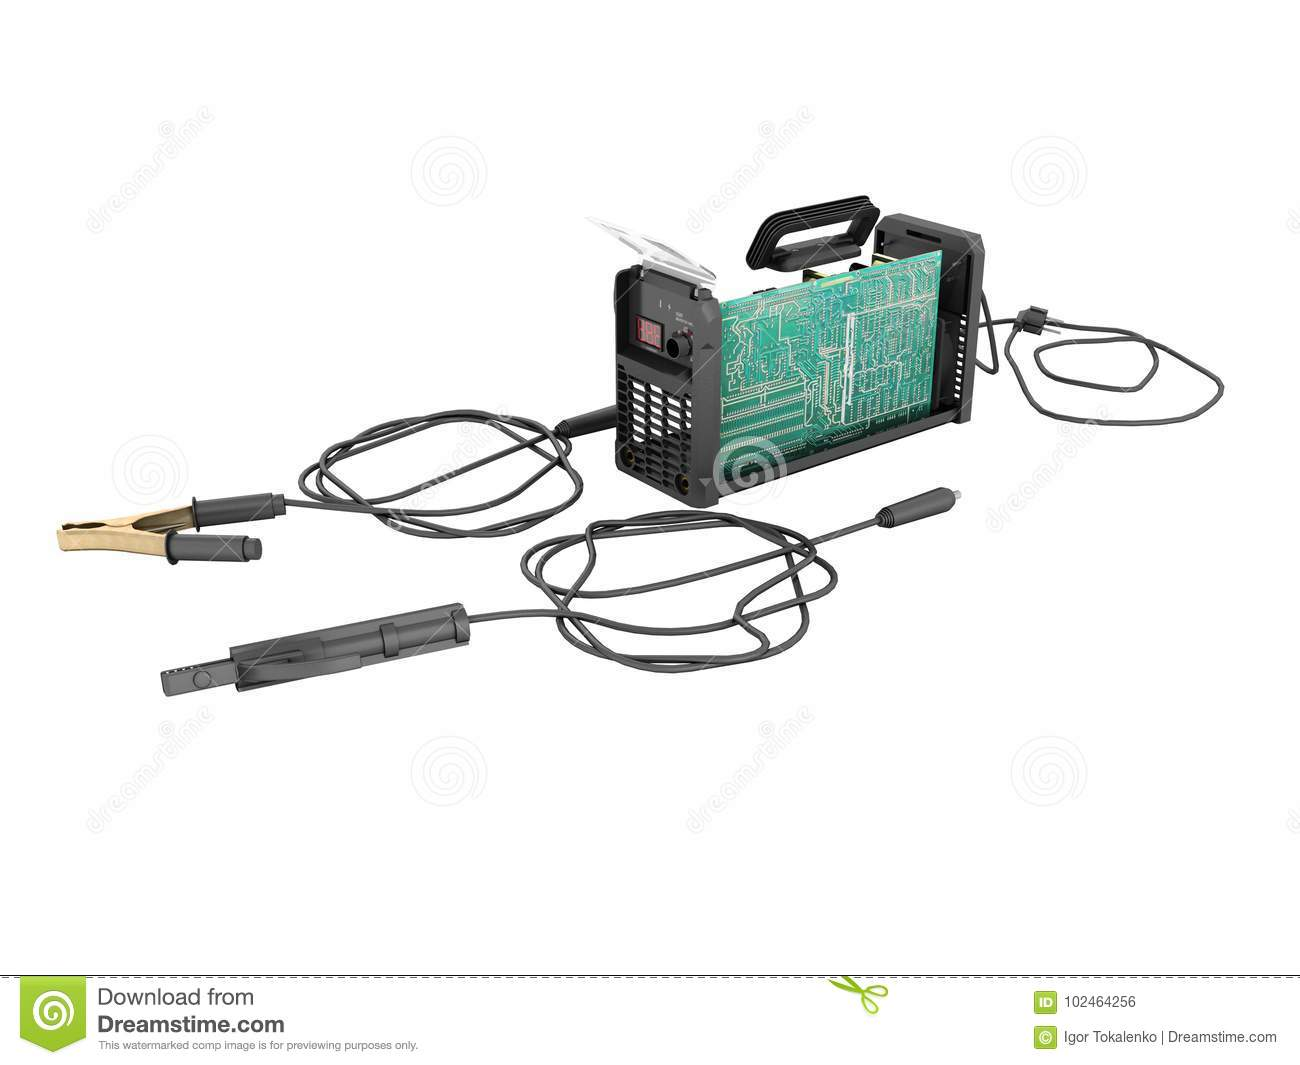 Inverter Welding Machine Disassembled From The Rear With